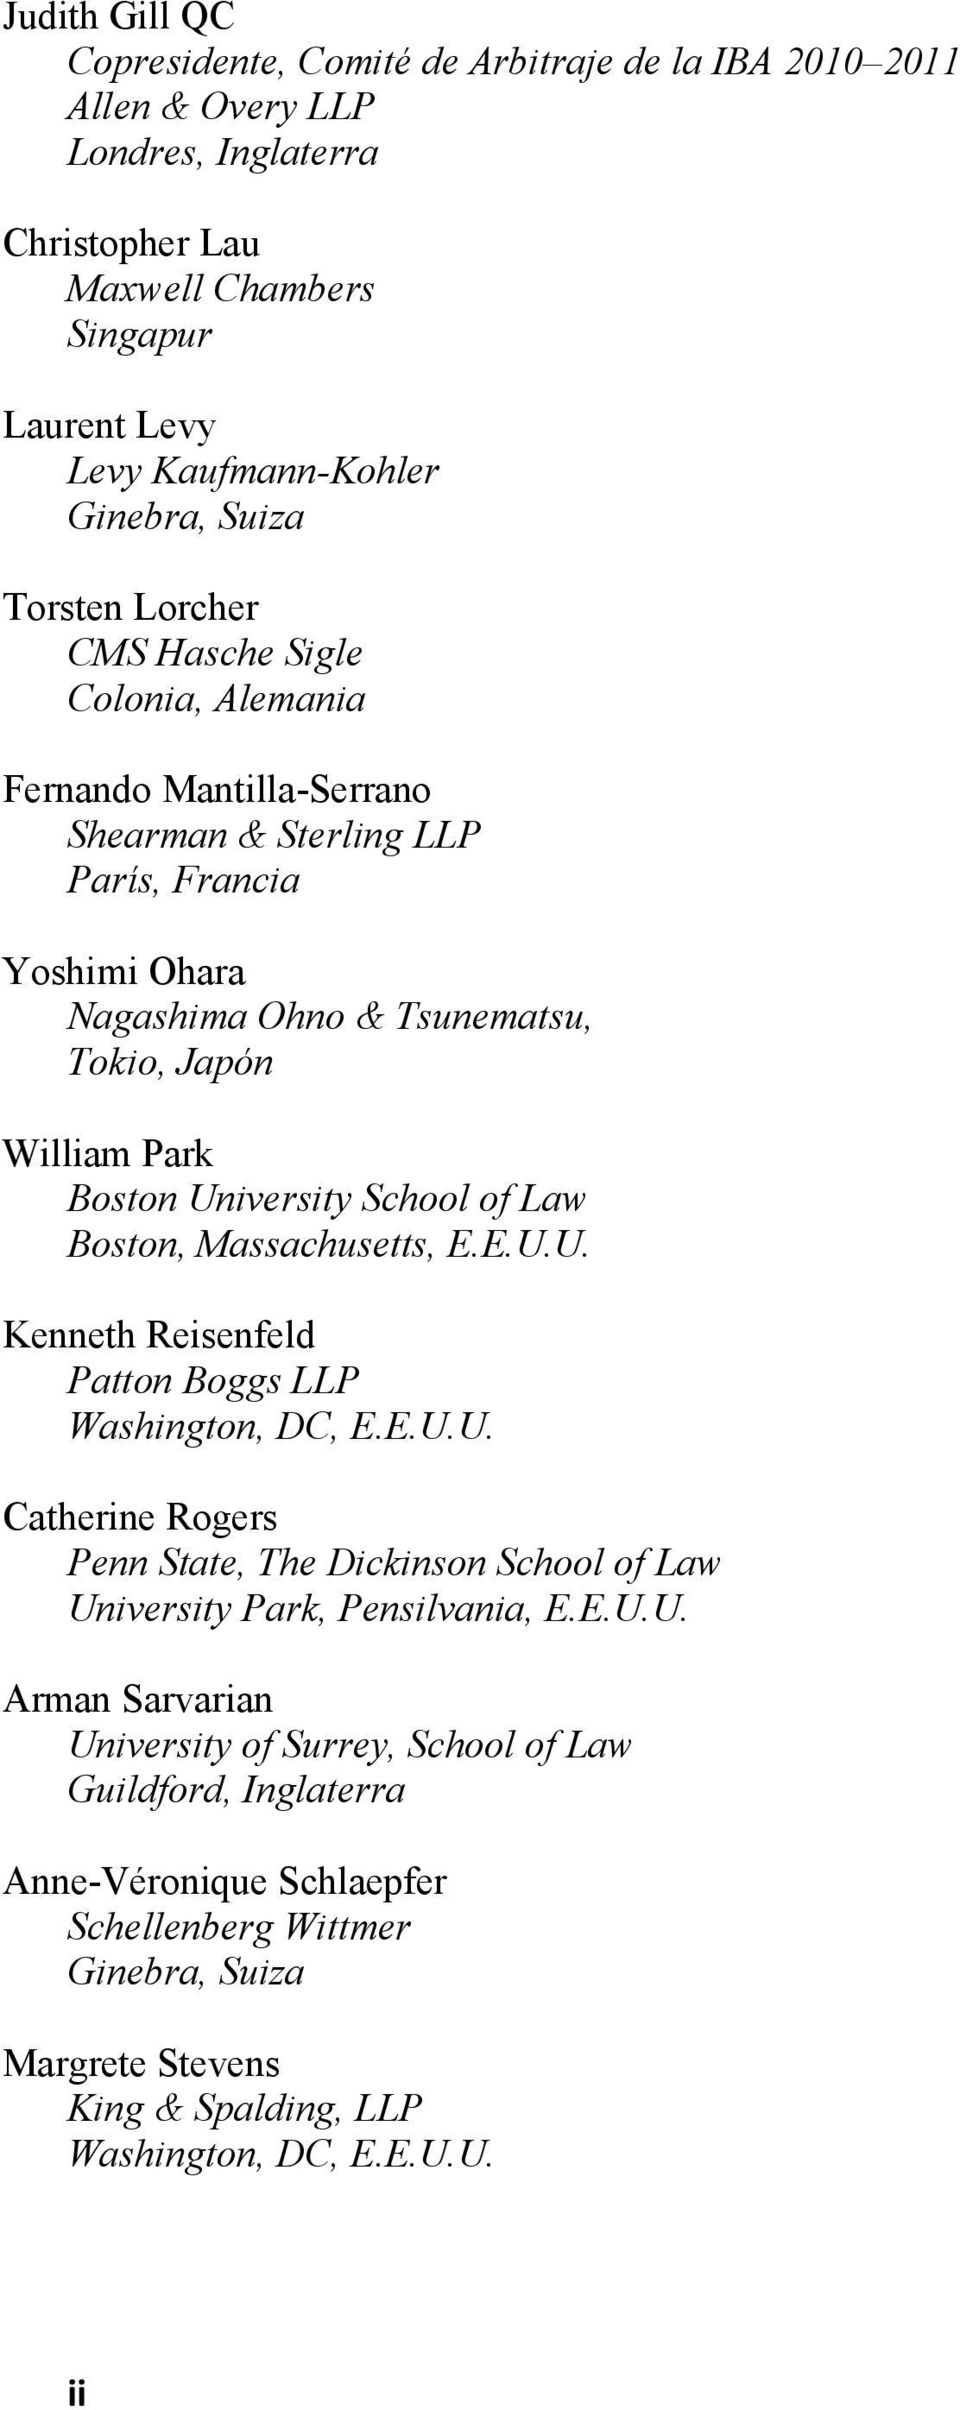 University School of Law Boston, Massachusetts, E.E.U.U. Kenneth Reisenfeld Patton Boggs LLP Washington, DC, E.E.U.U. Catherine Rogers Penn State, The Dickinson School of Law University Park, Pensilvania, E.